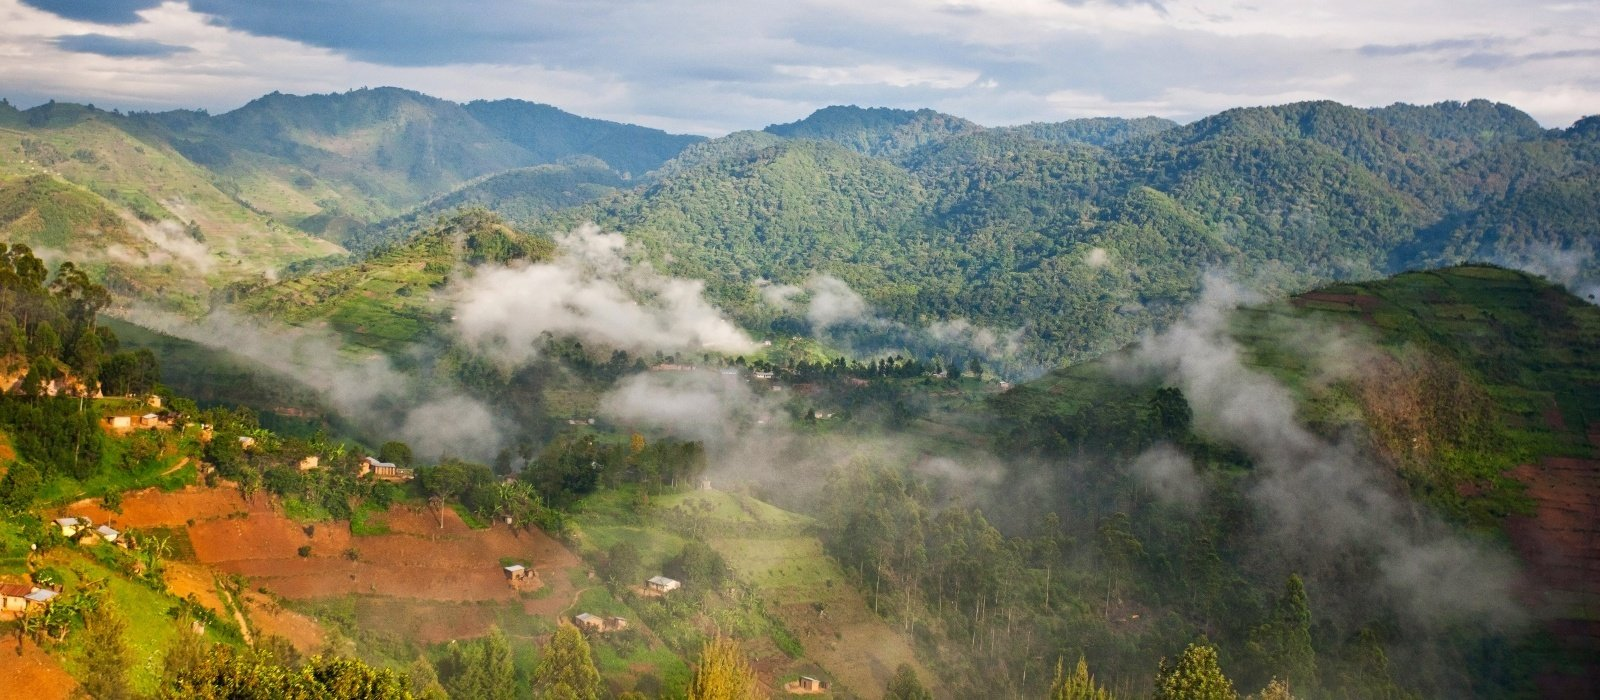 Destination Uganda Safari - Bwindi Impenetrable Forest